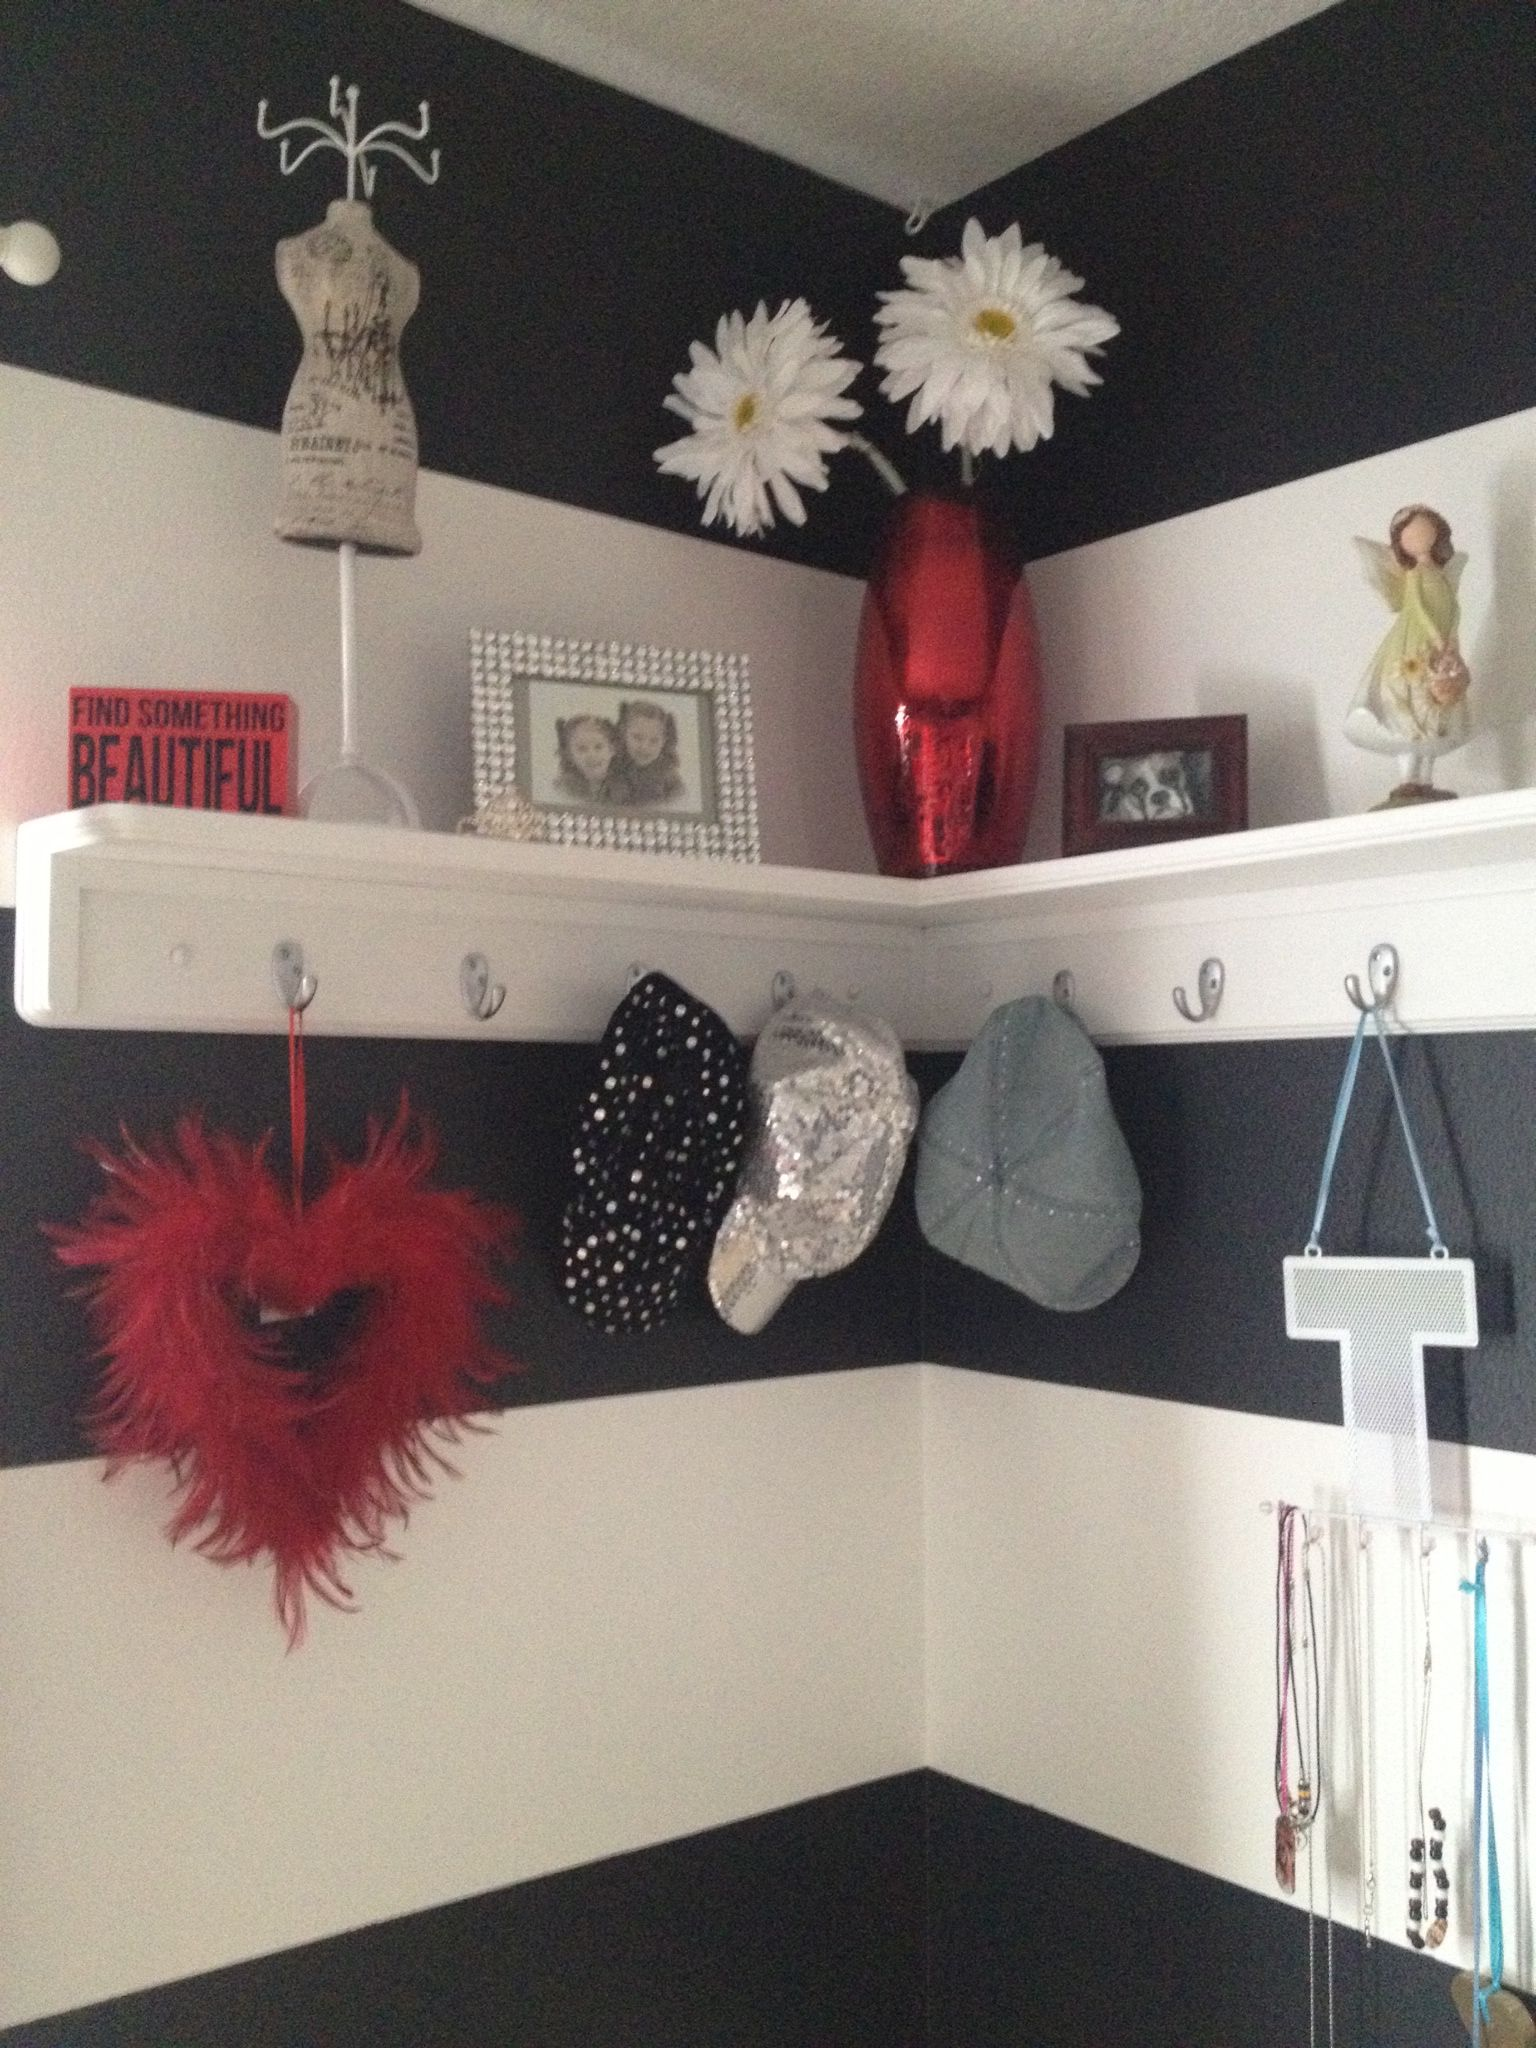 3 Home Decor Trends For Spring Brittany Stager: Bold But Girly Shelf Decor In Our Black White & Red Tween